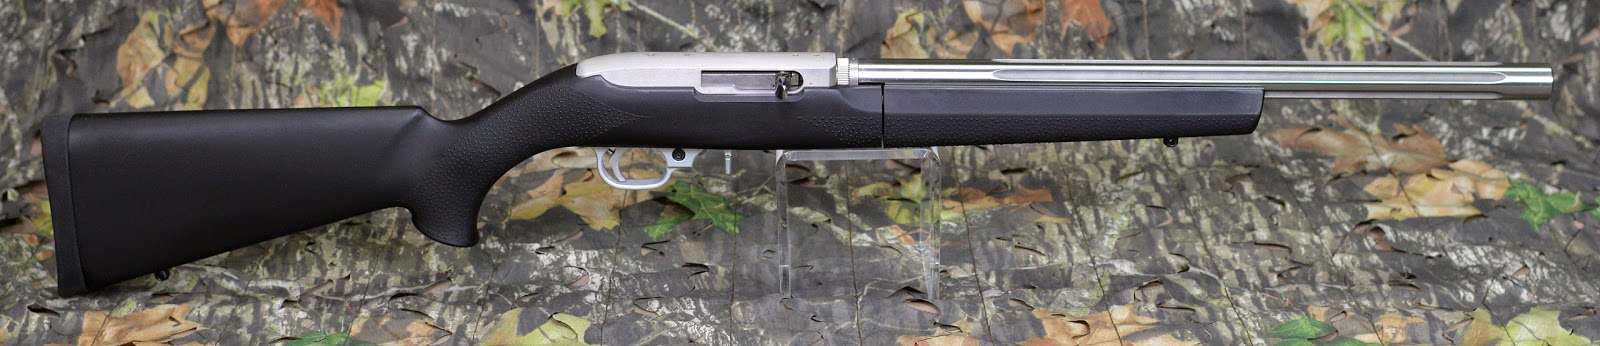 Ruger 10 22 takedown stock set gallery